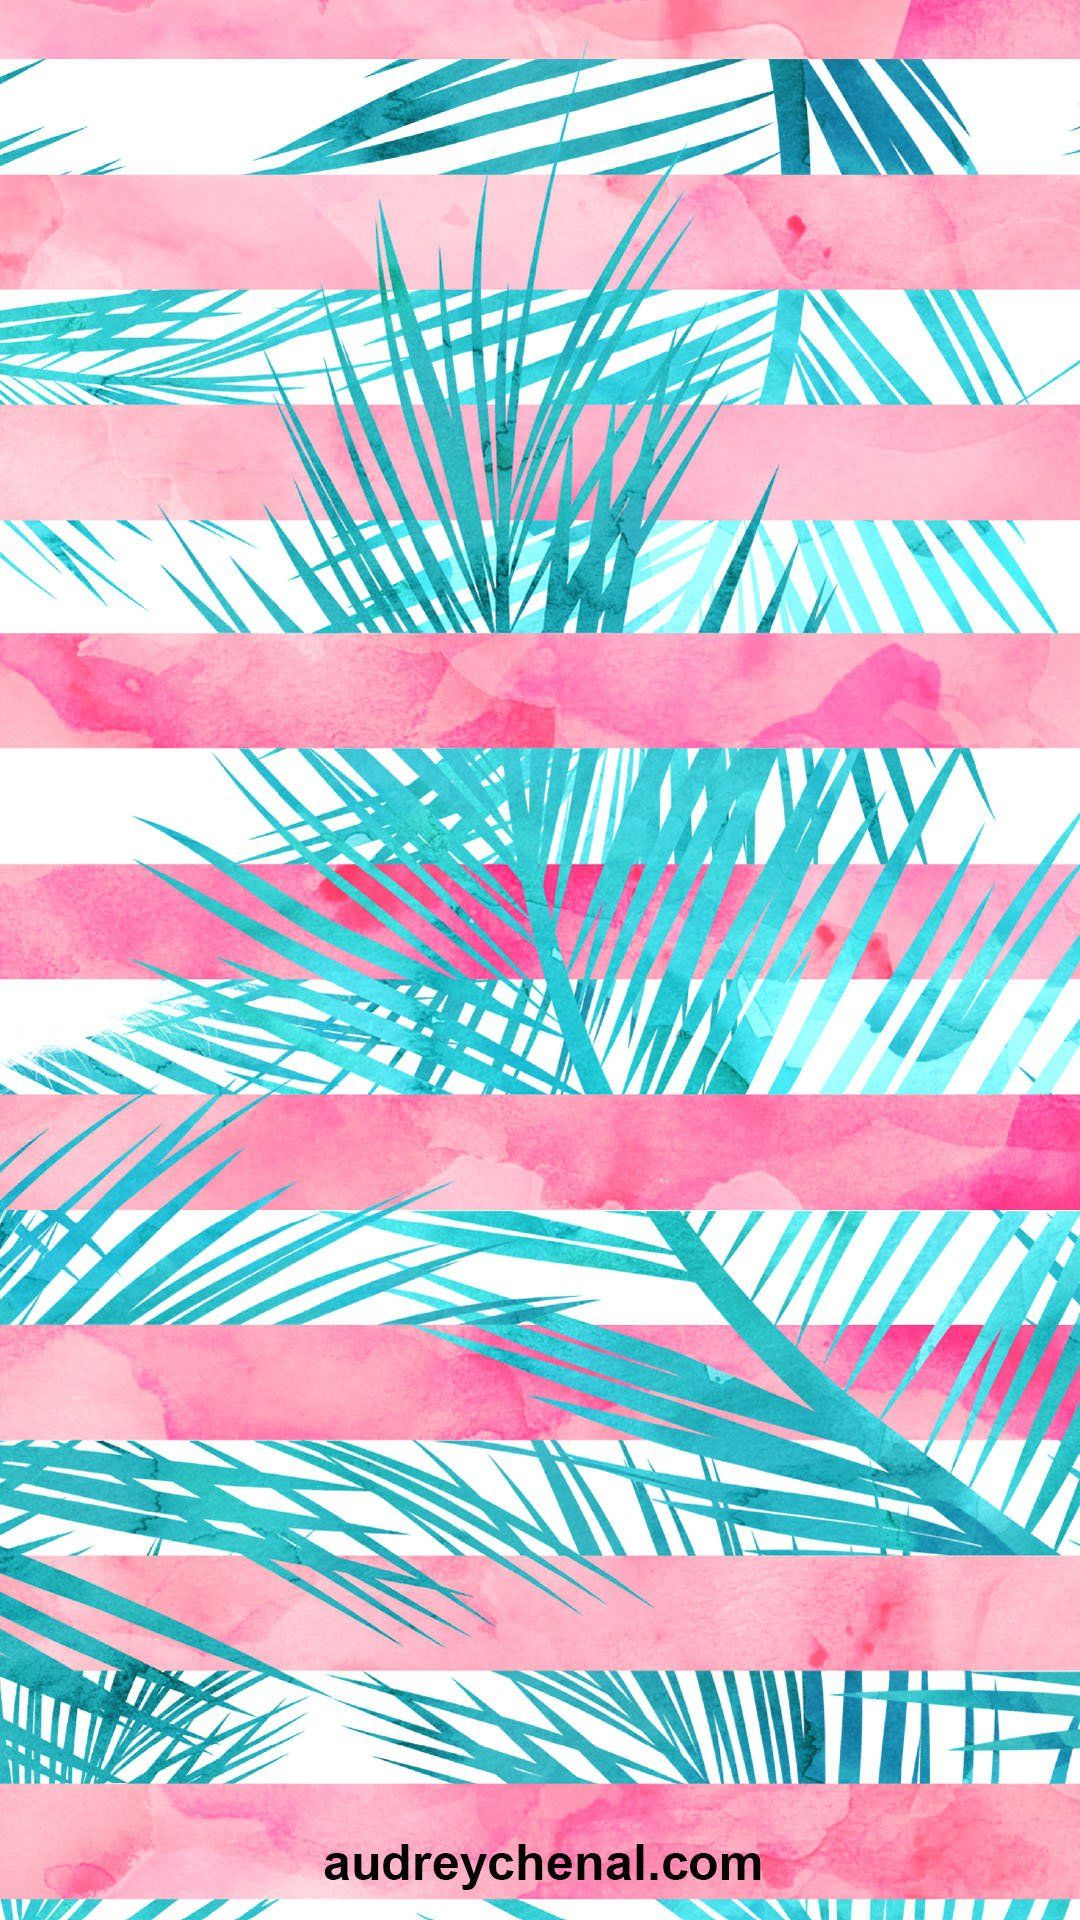 1080x1920 pink coral teal turquoise watercolor palm tree leaf pattern ...